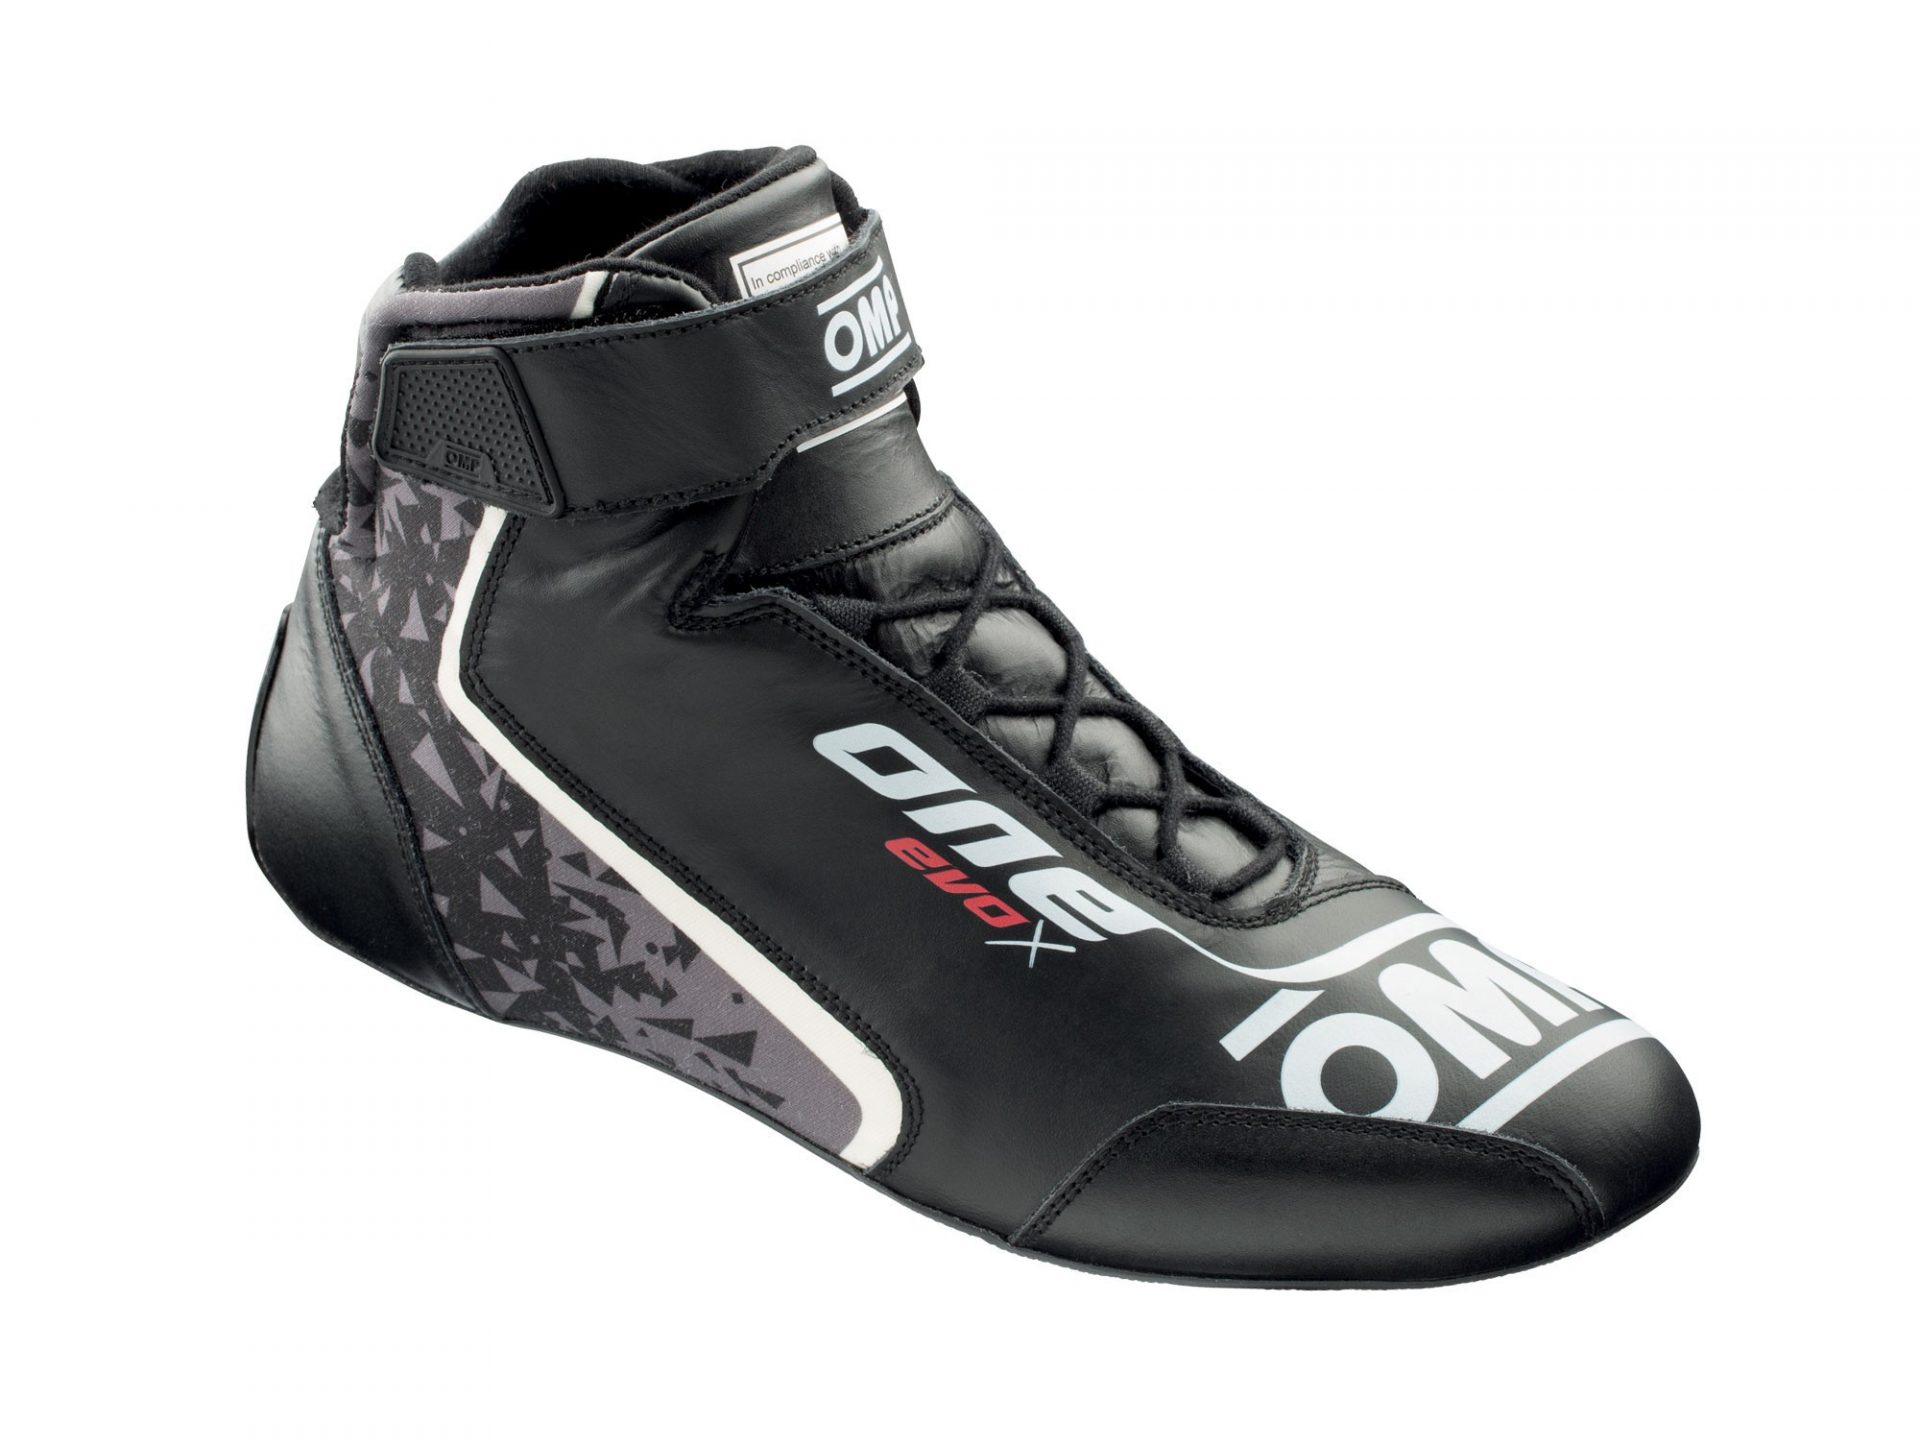 Нов продукт: OMP One Evo X, FIA Shoes